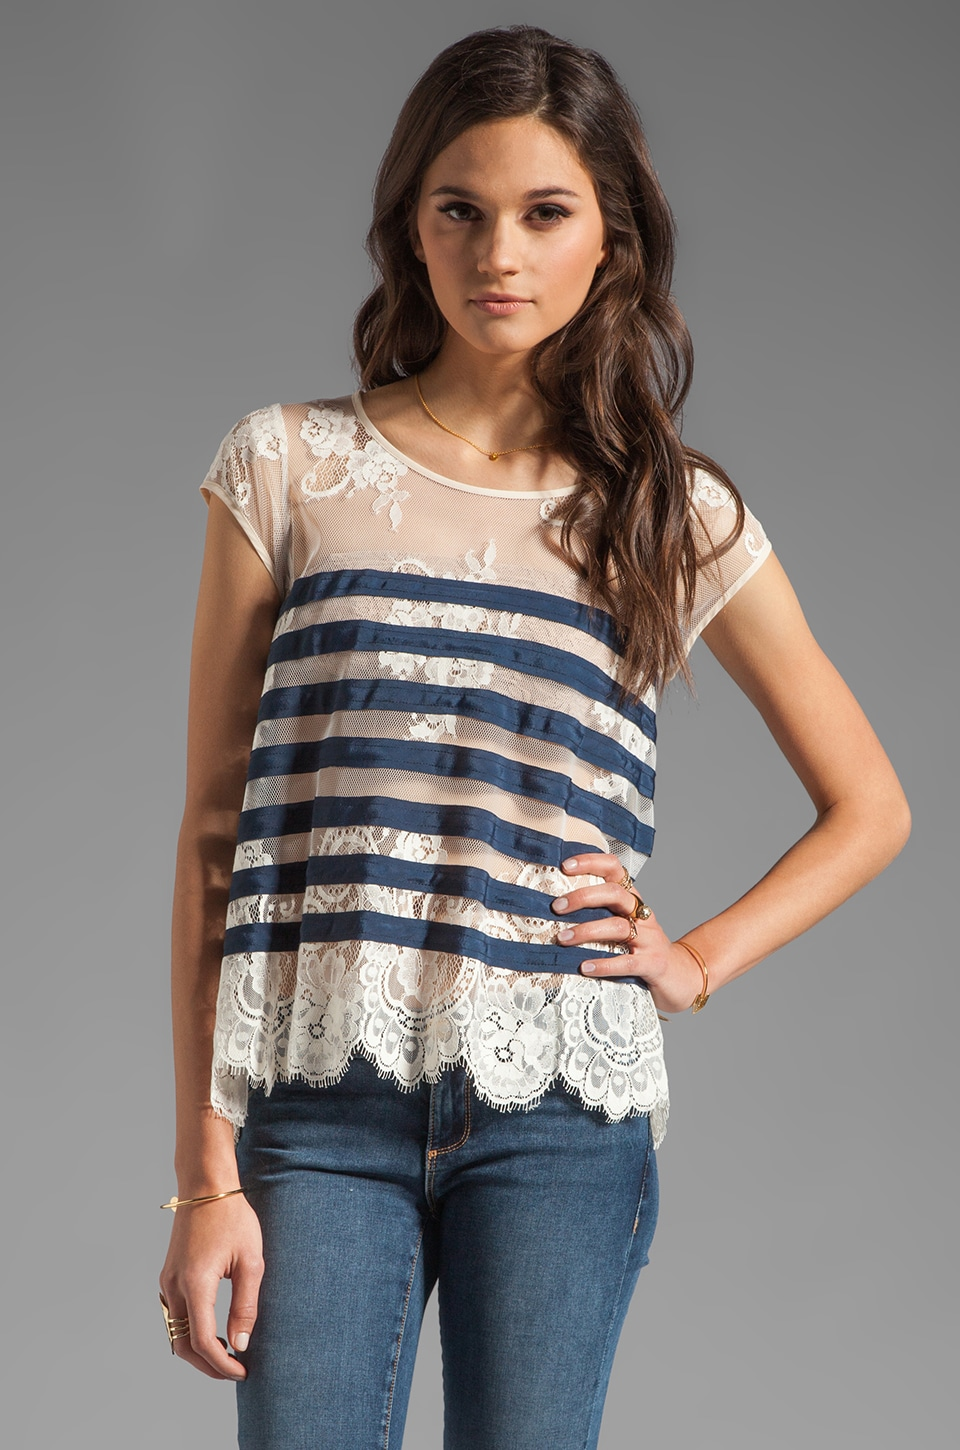 BCBGMAXAZRIA Striped Short Sleeve Top in Carbon Combo